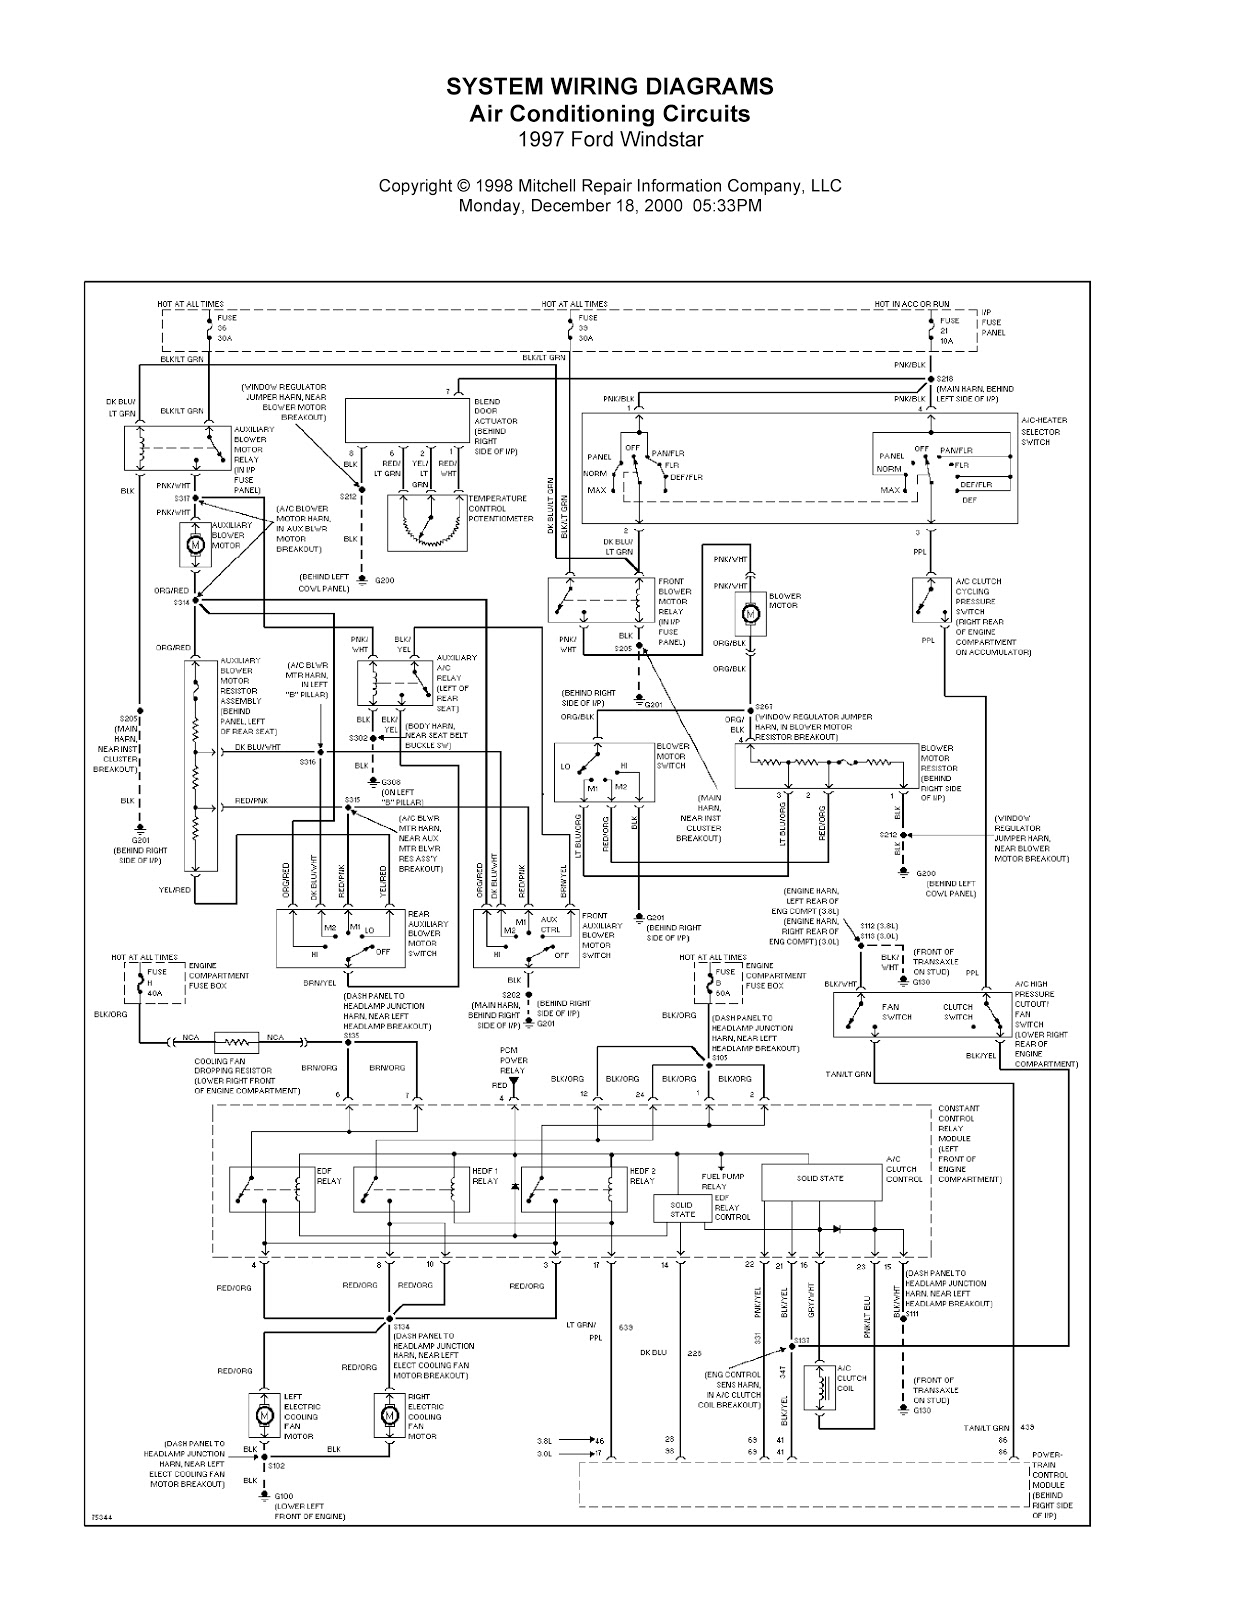 0001 1998 ford f150 wiring diagram 1998 ford f150 troubleshooting 1998 ford expedition wiring diagram at panicattacktreatment.co